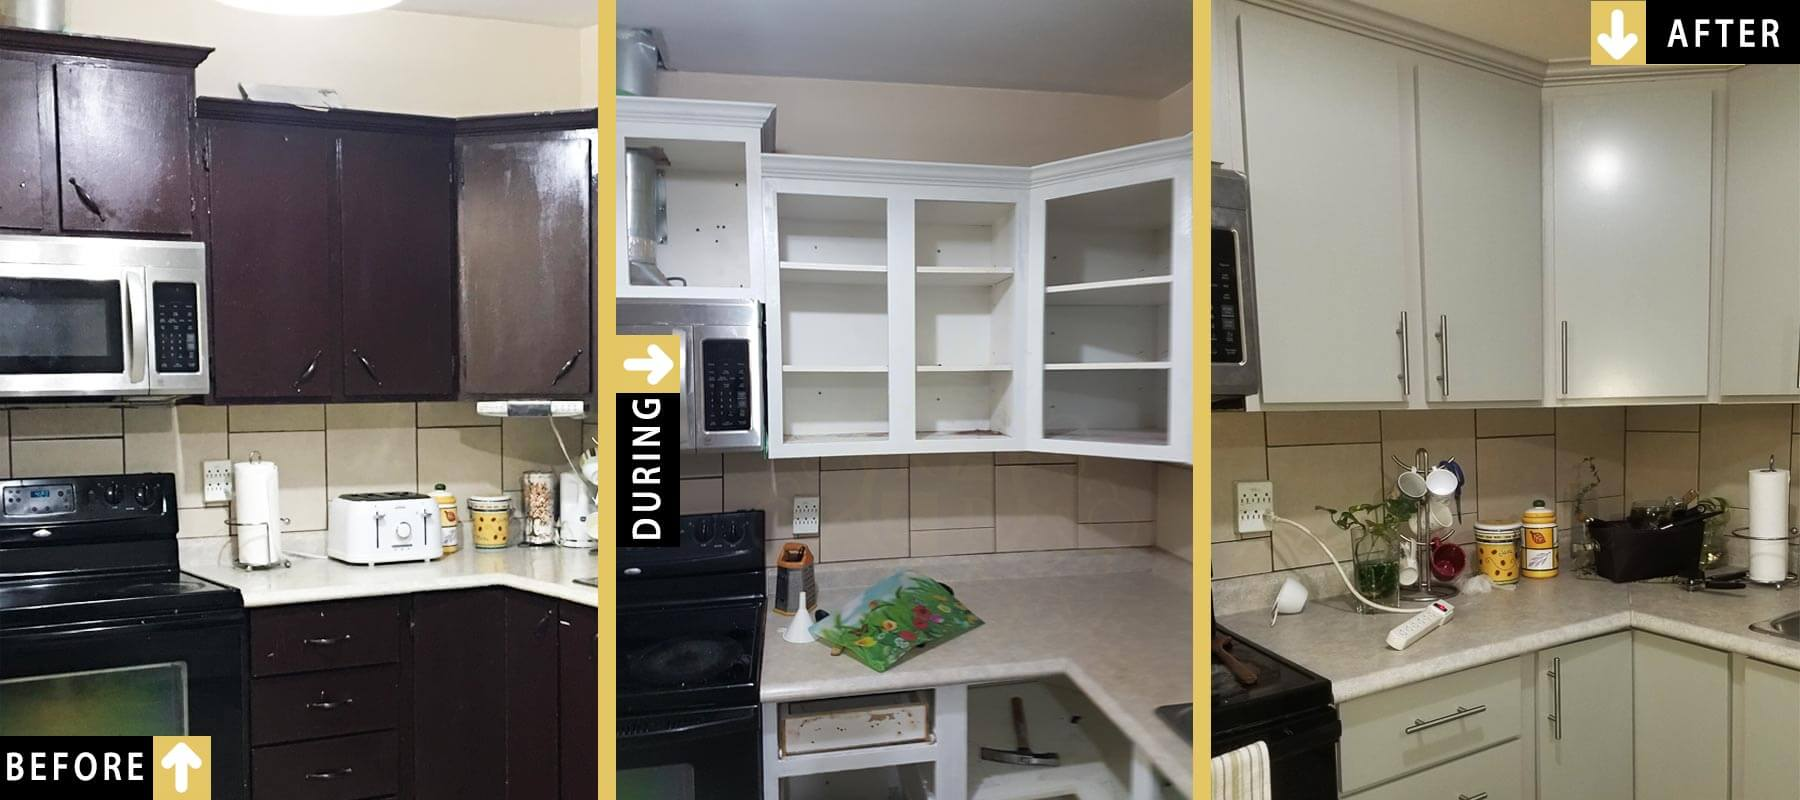 Before During After Photo Of Sanding Repainting Kitchen Cabinets Toronto